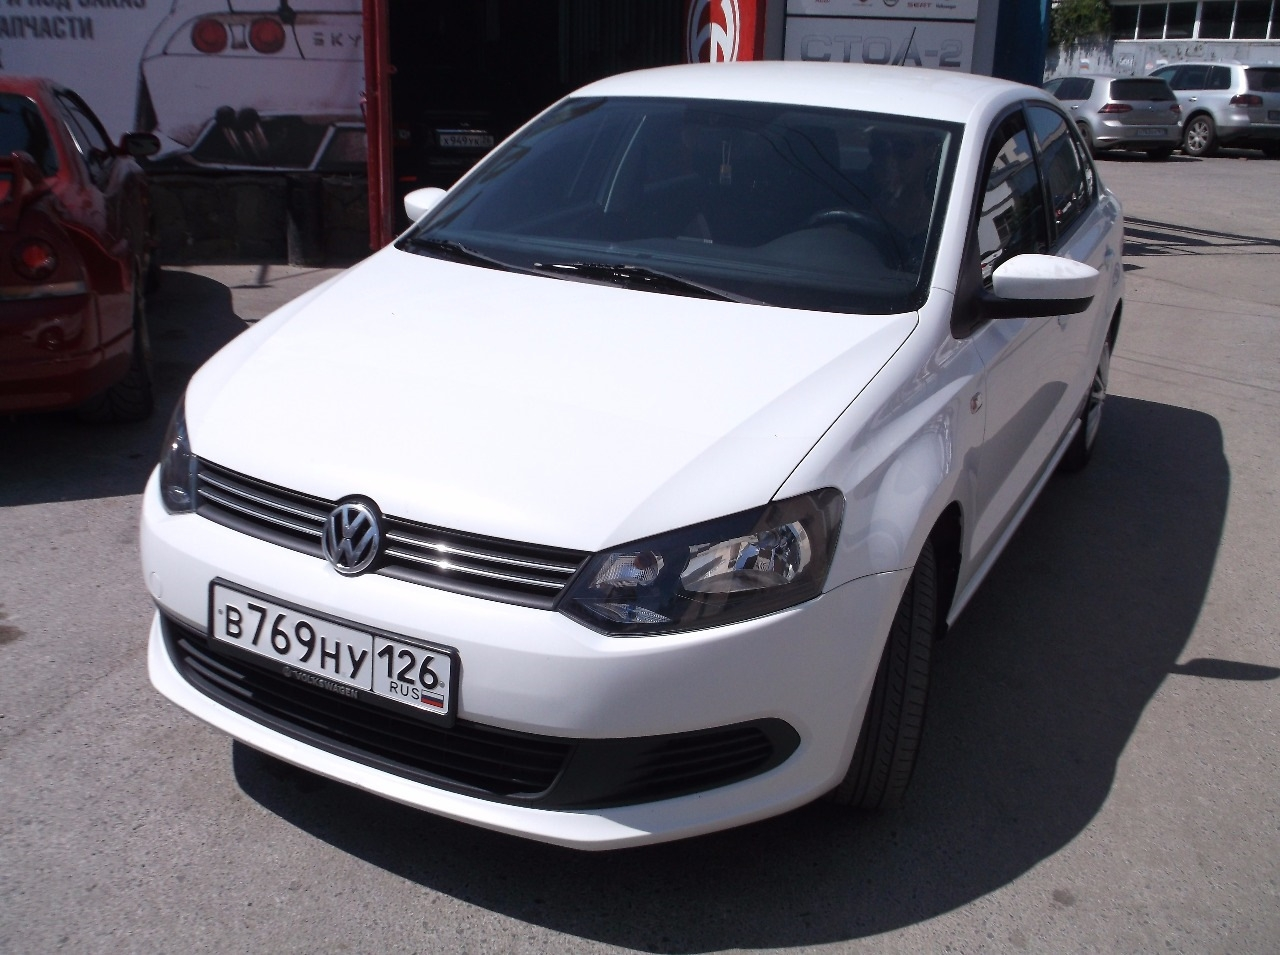 Чип тюнинг Volkswagen Polo 1.6 105hp